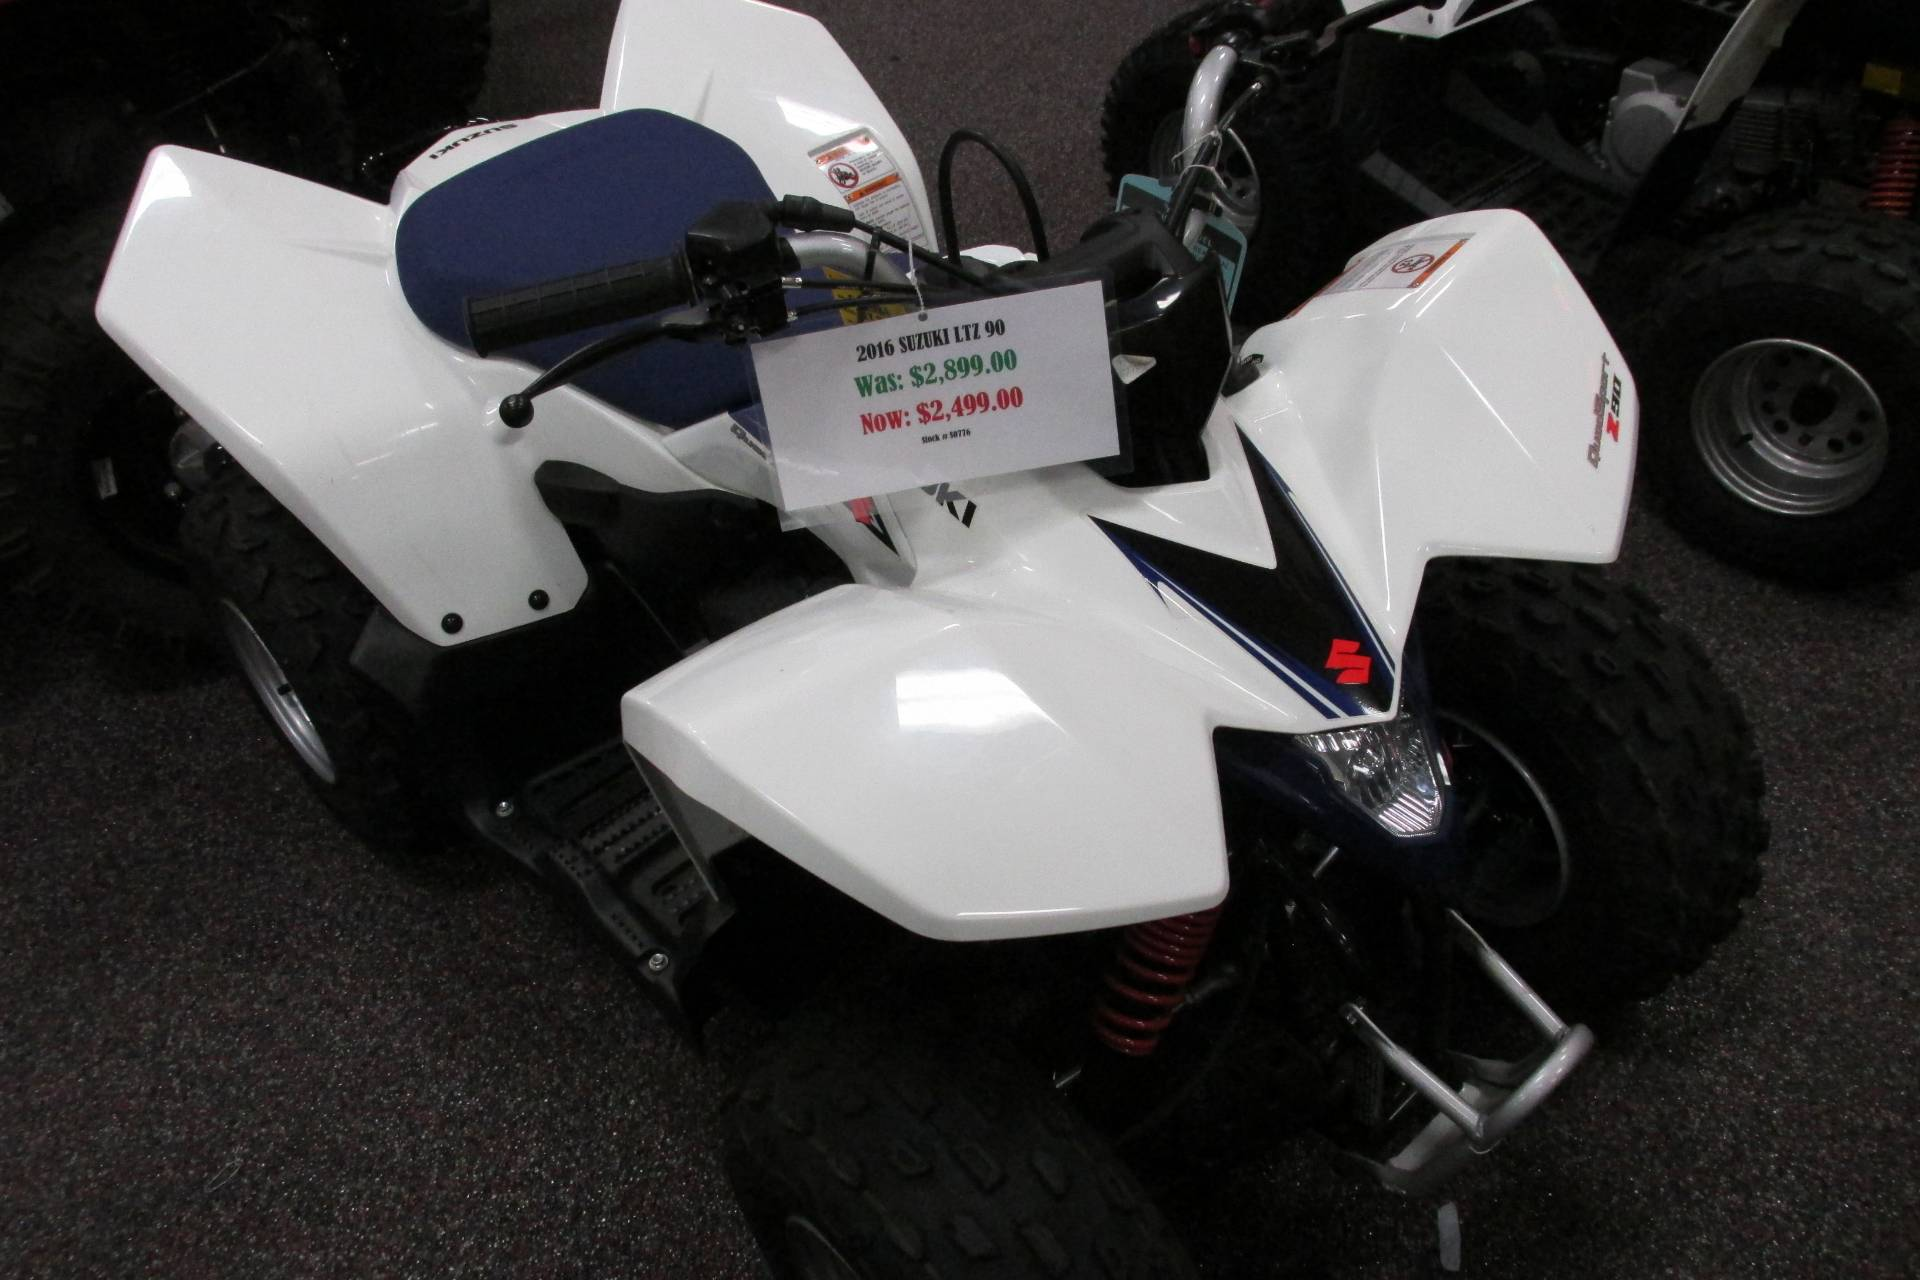 2016 Suzuki LTZ90 in Springfield, Ohio